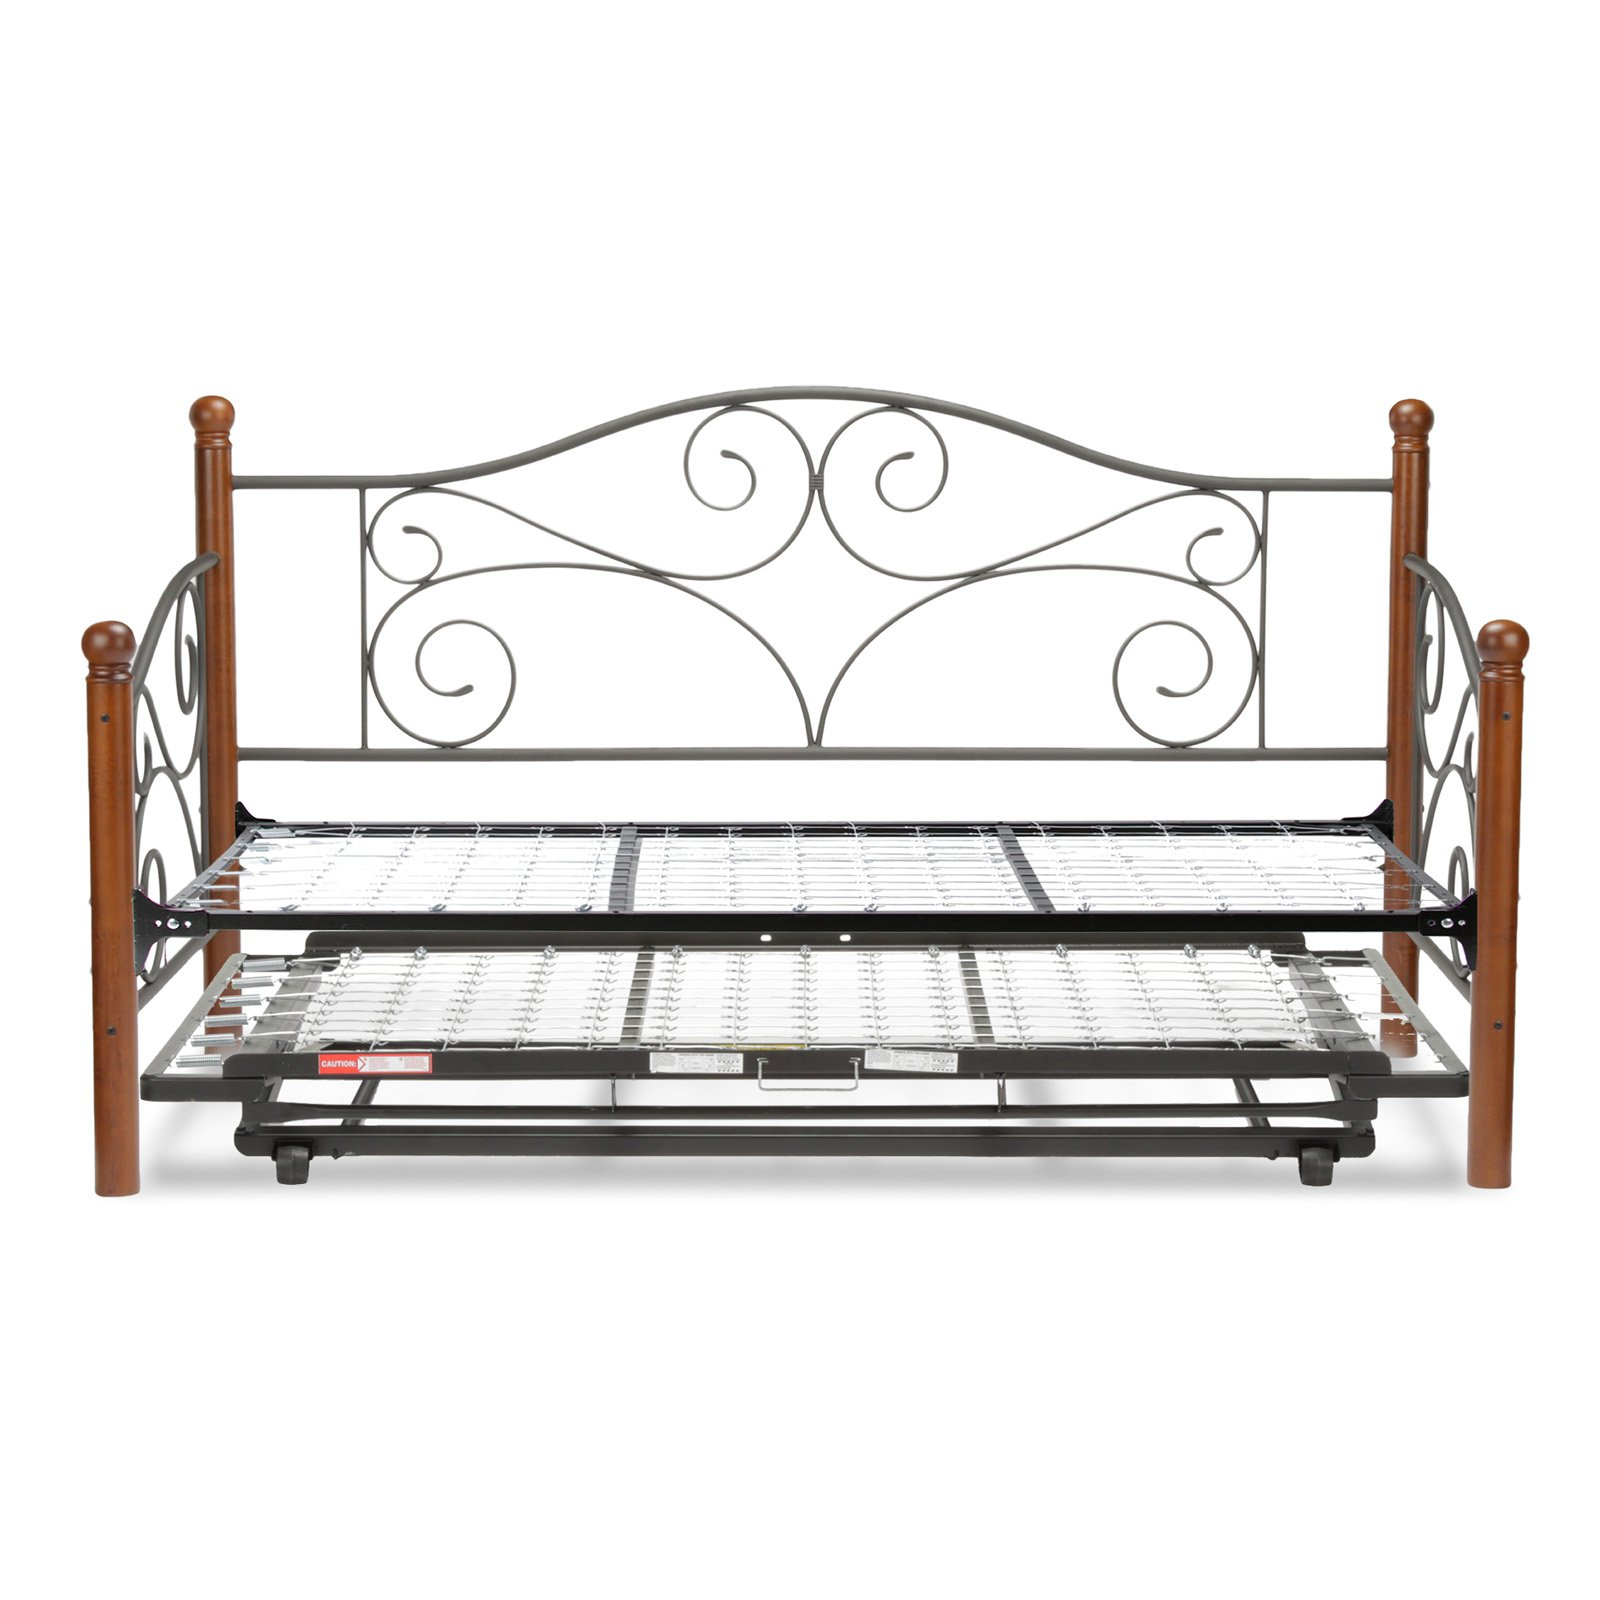 Doral Complete Metal Day Bed with Link Spring and Trundle Bed Pop-Up Frame, Matte Black Finish, Twin by Fashion Bed Group